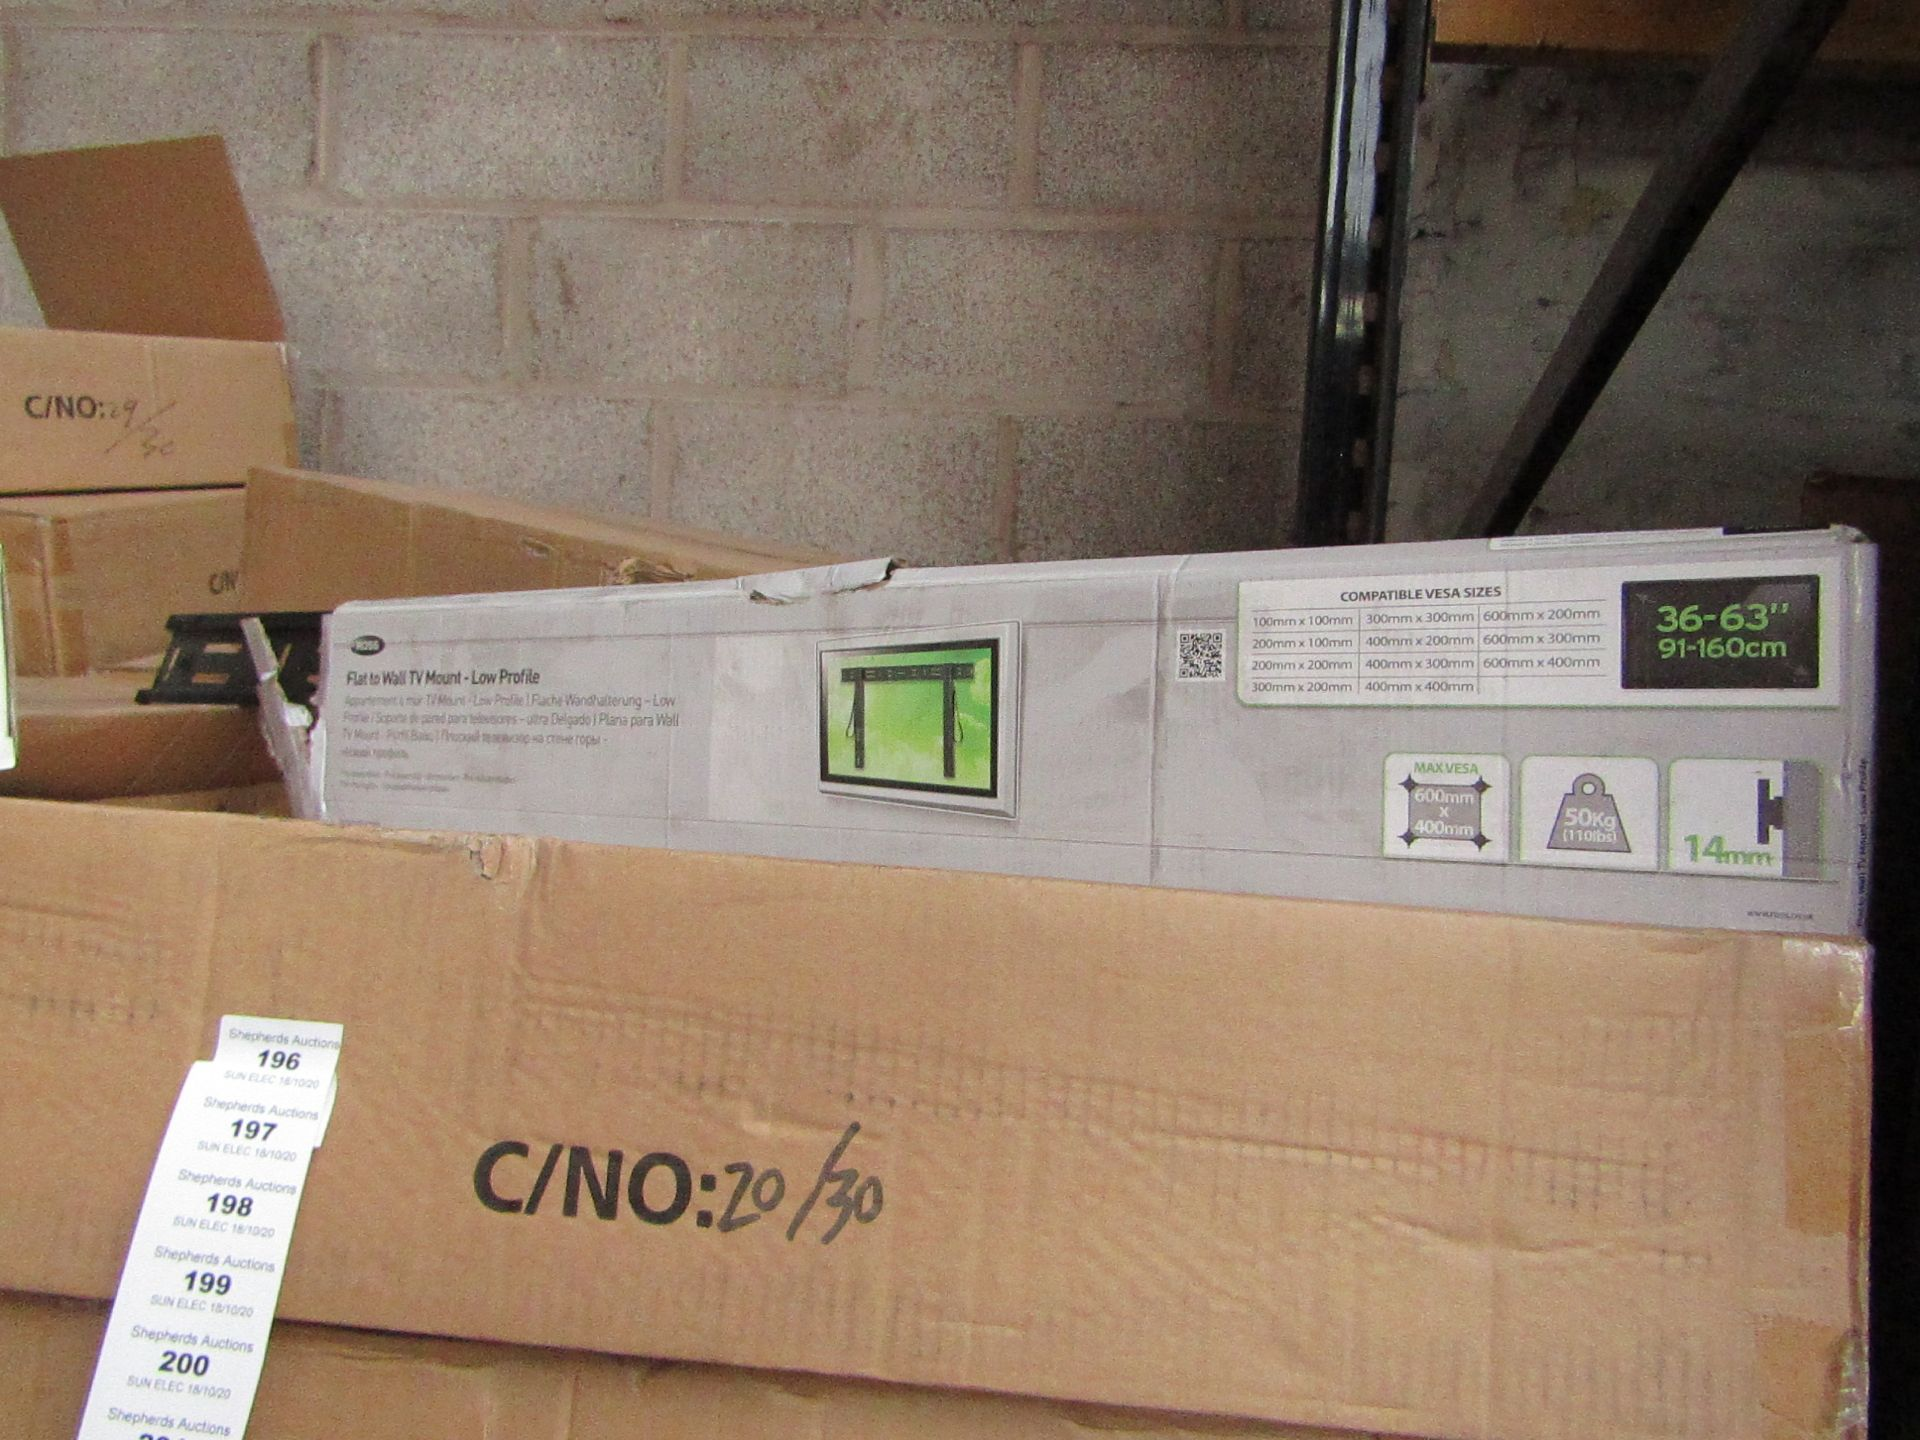 """Lot 197 - Ross - Flat To Wall TV Mount - Low Profile 36 - 63"""" - New & Boxed."""